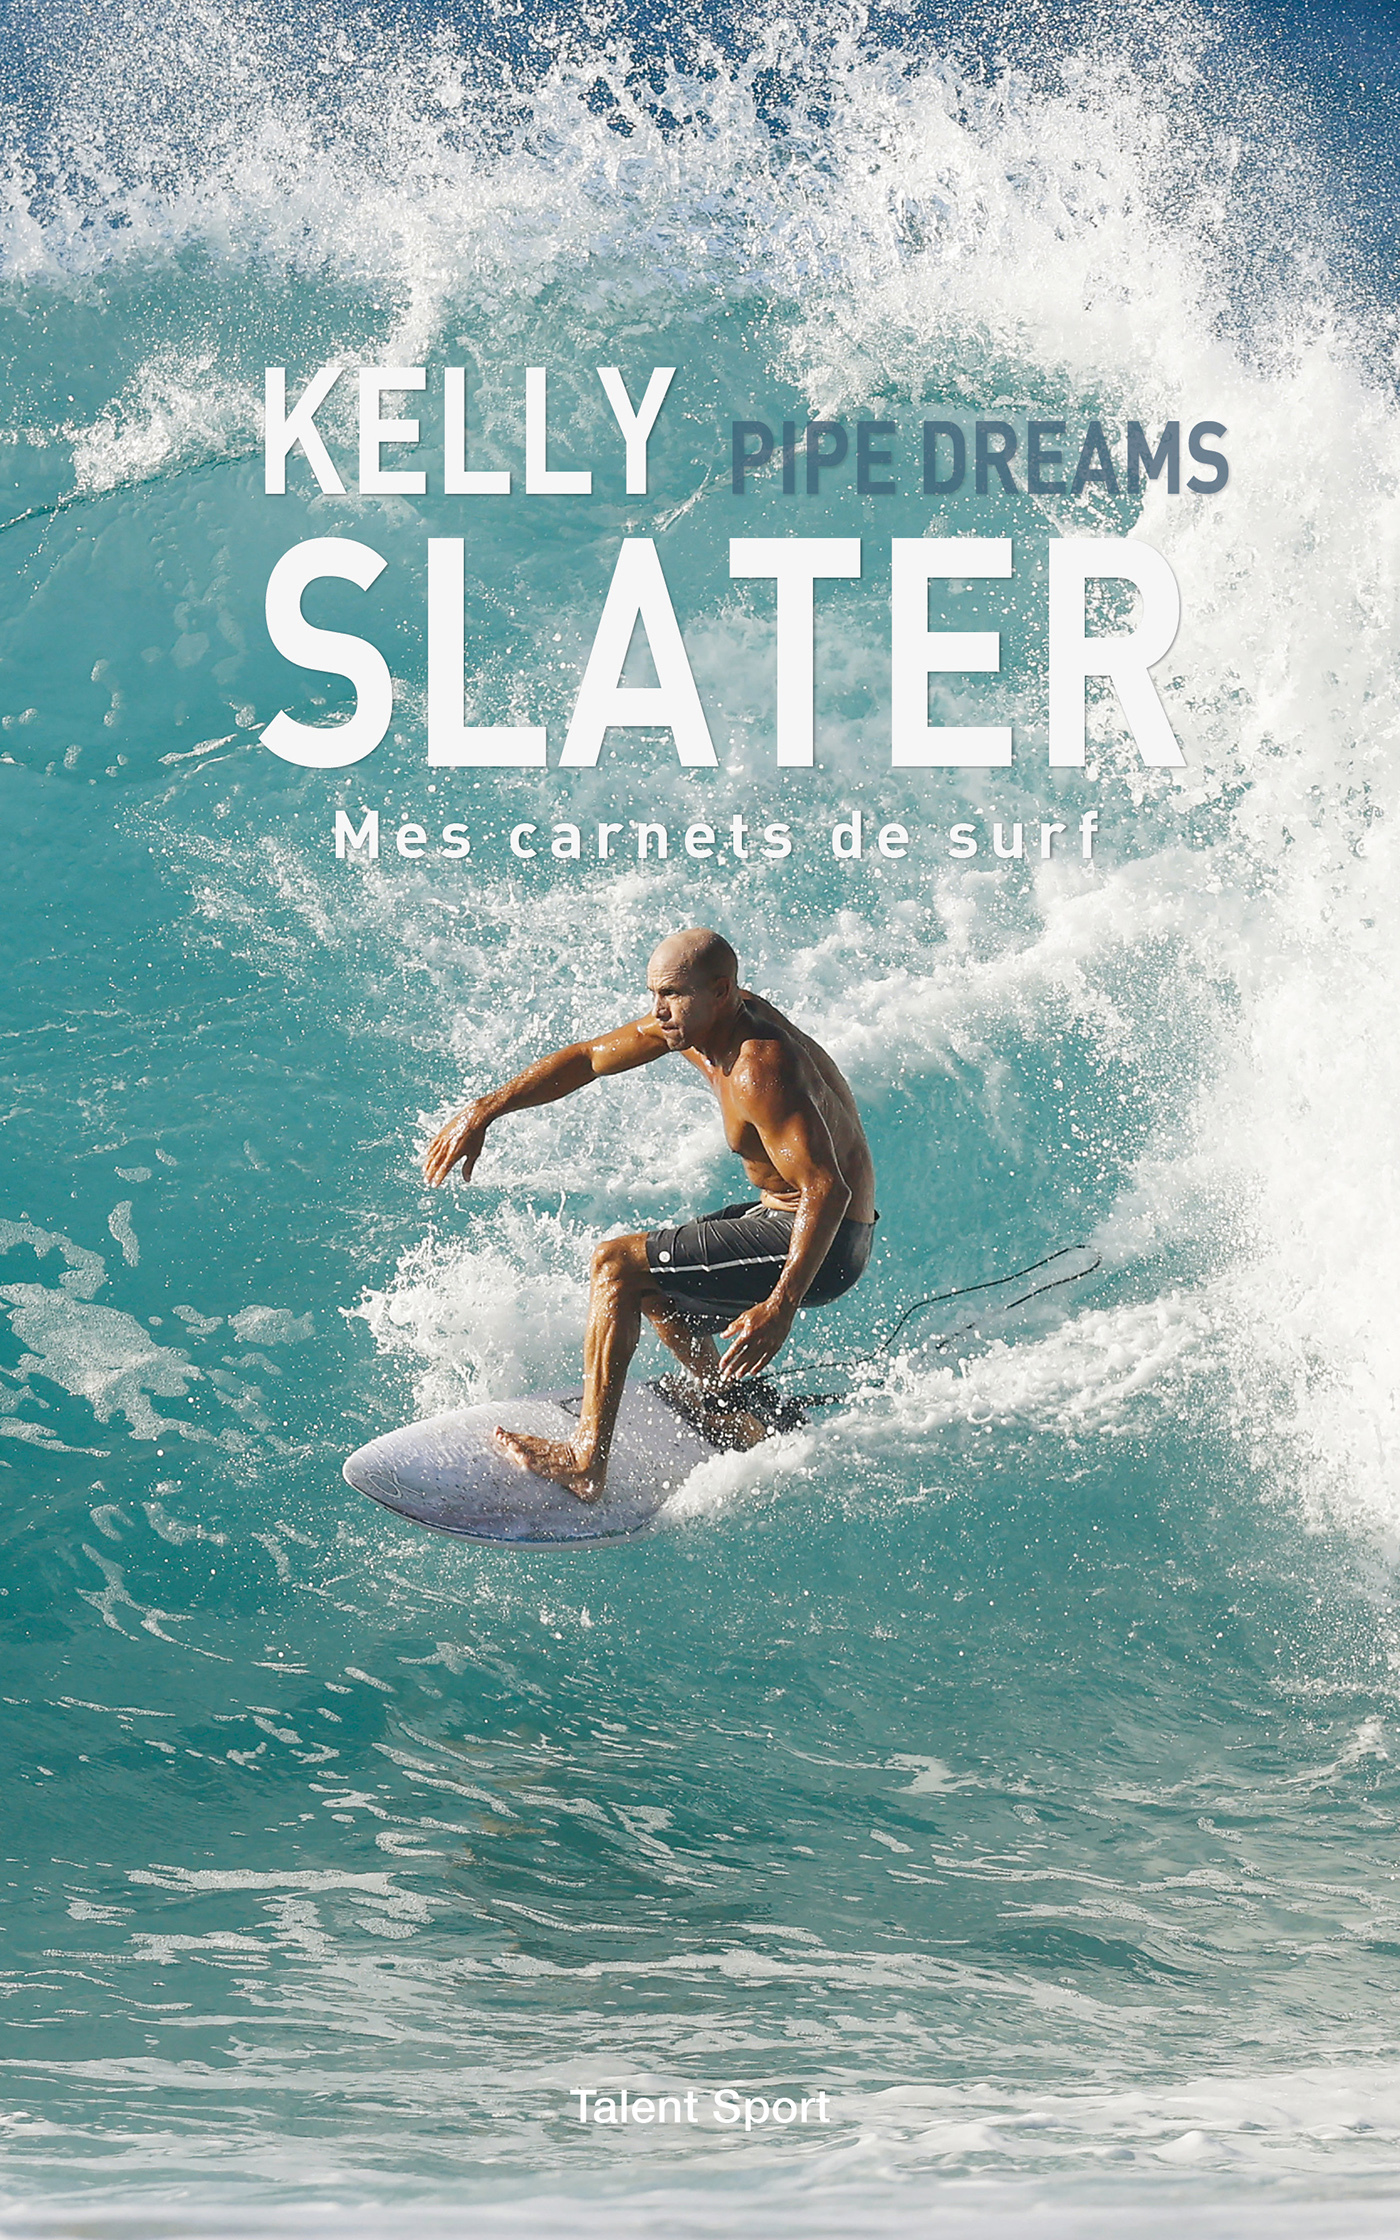 KELLY SLATER : PIPE DREAMS - MES CARNETS DE SURF